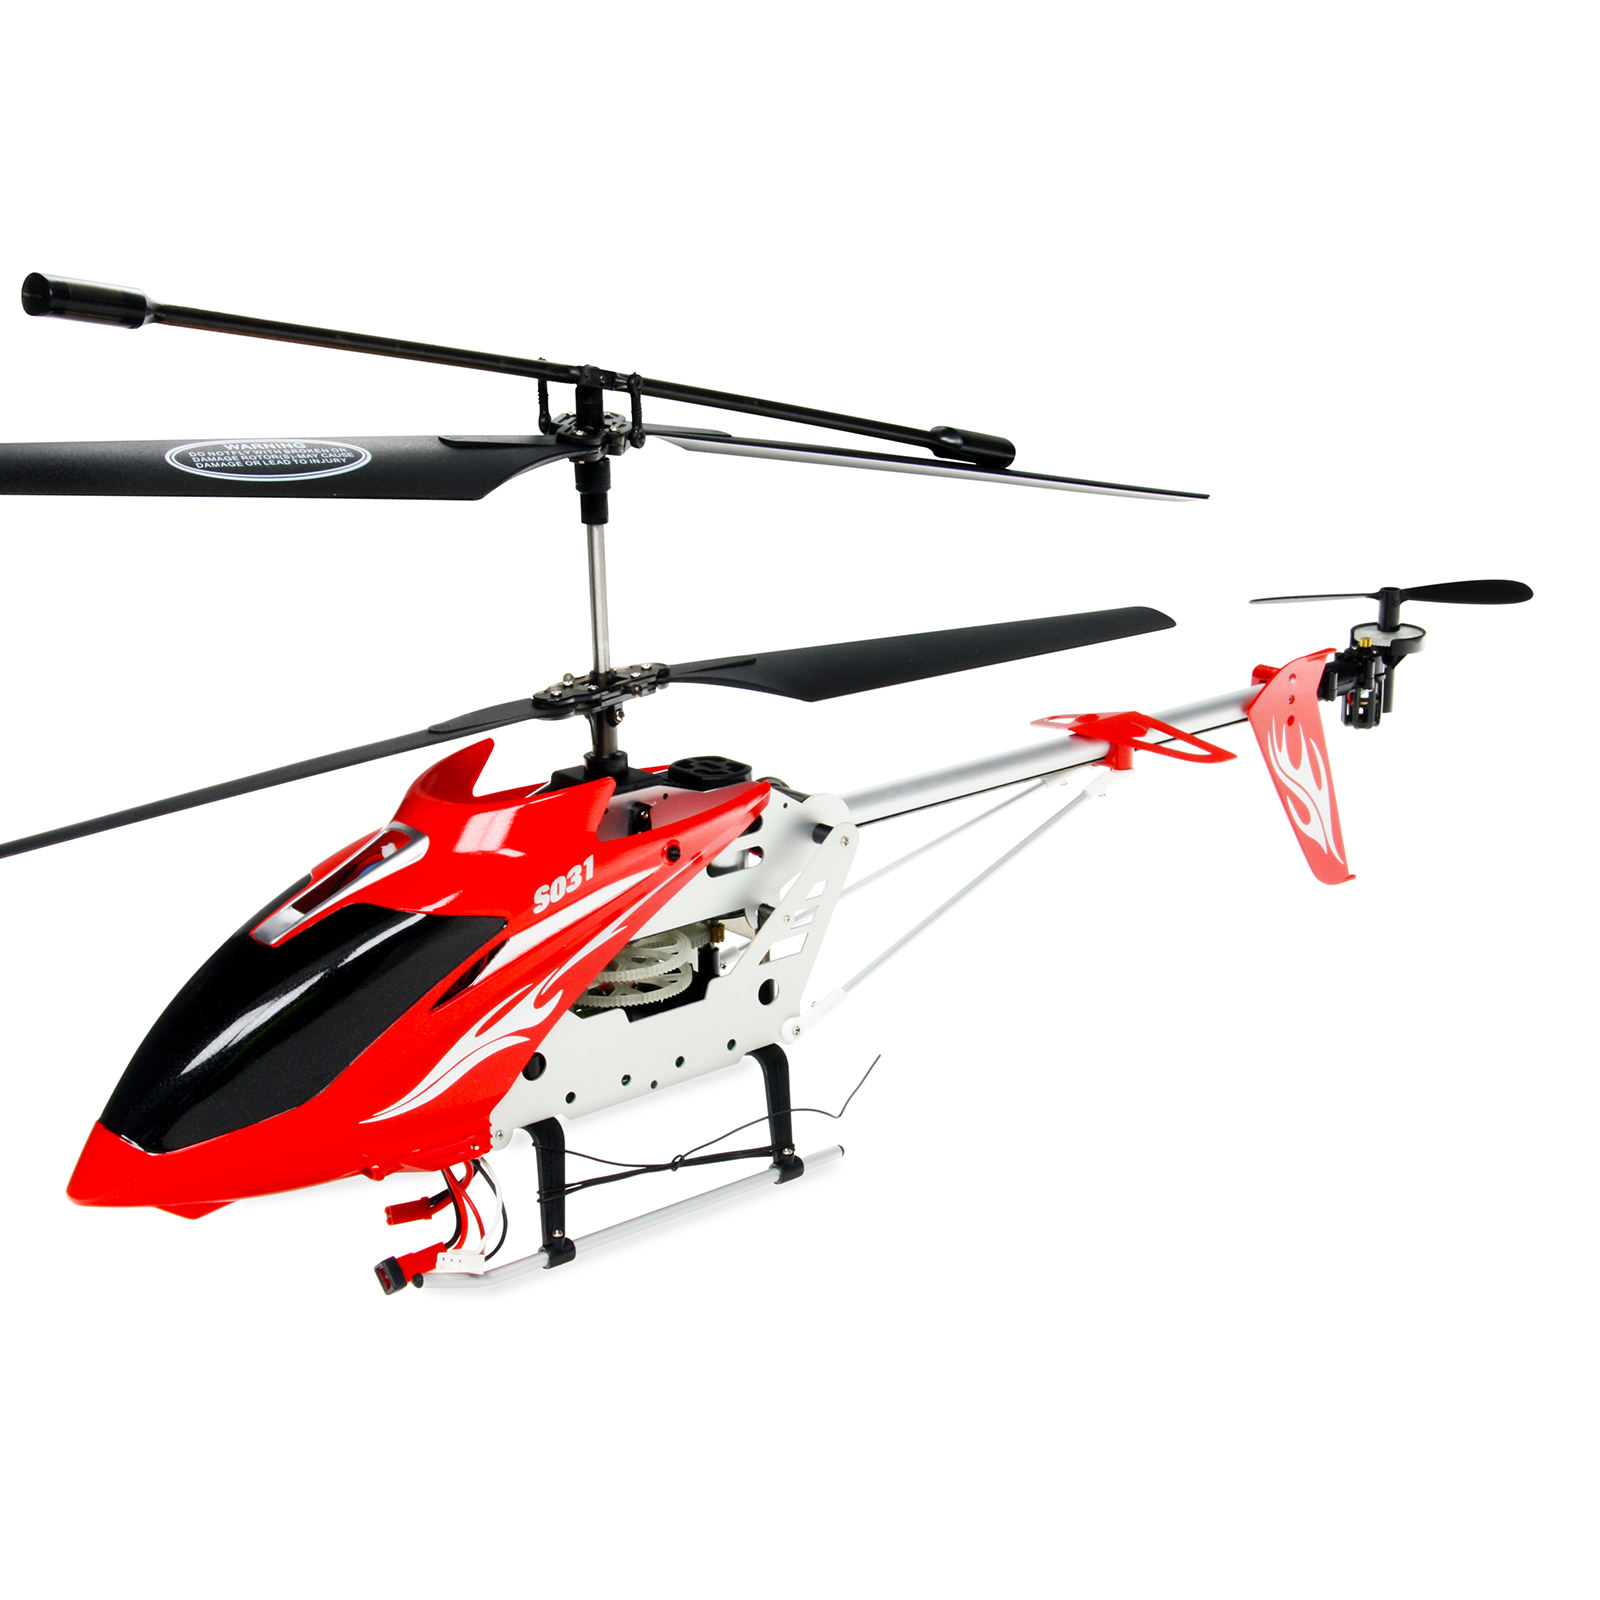 Syma s031g red rc helicopter at hobby warehouse for Helicoptere syma